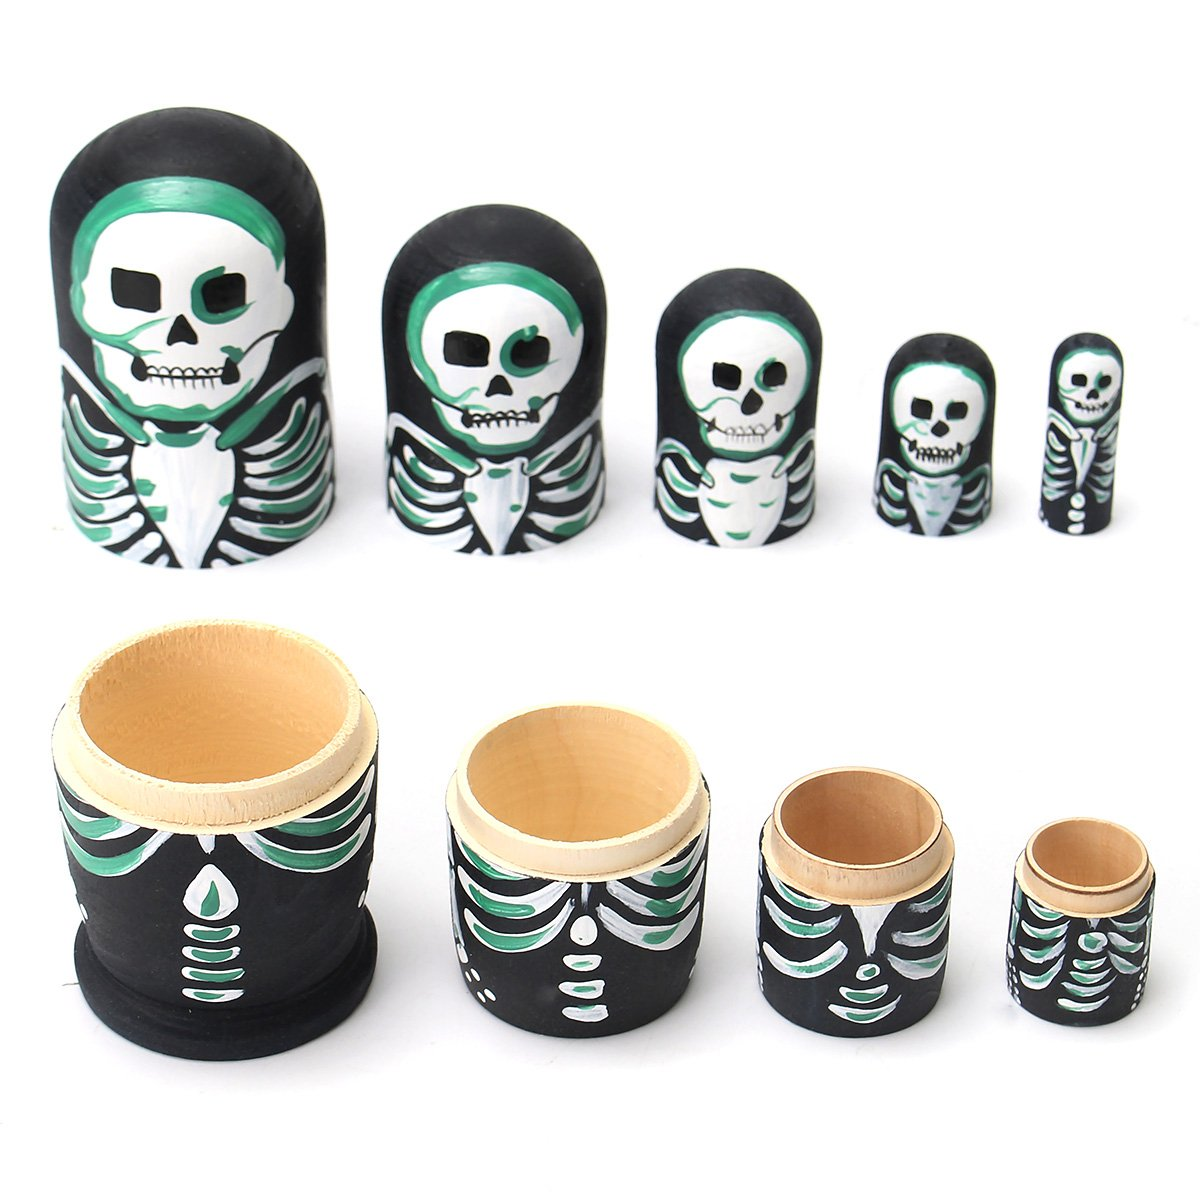 Jeteven 5Pcs Nesting Dolls Matryoshka Russian Stacking Dolls Wooden Nested Set Skull Handmade Painted Toys for Children Kids